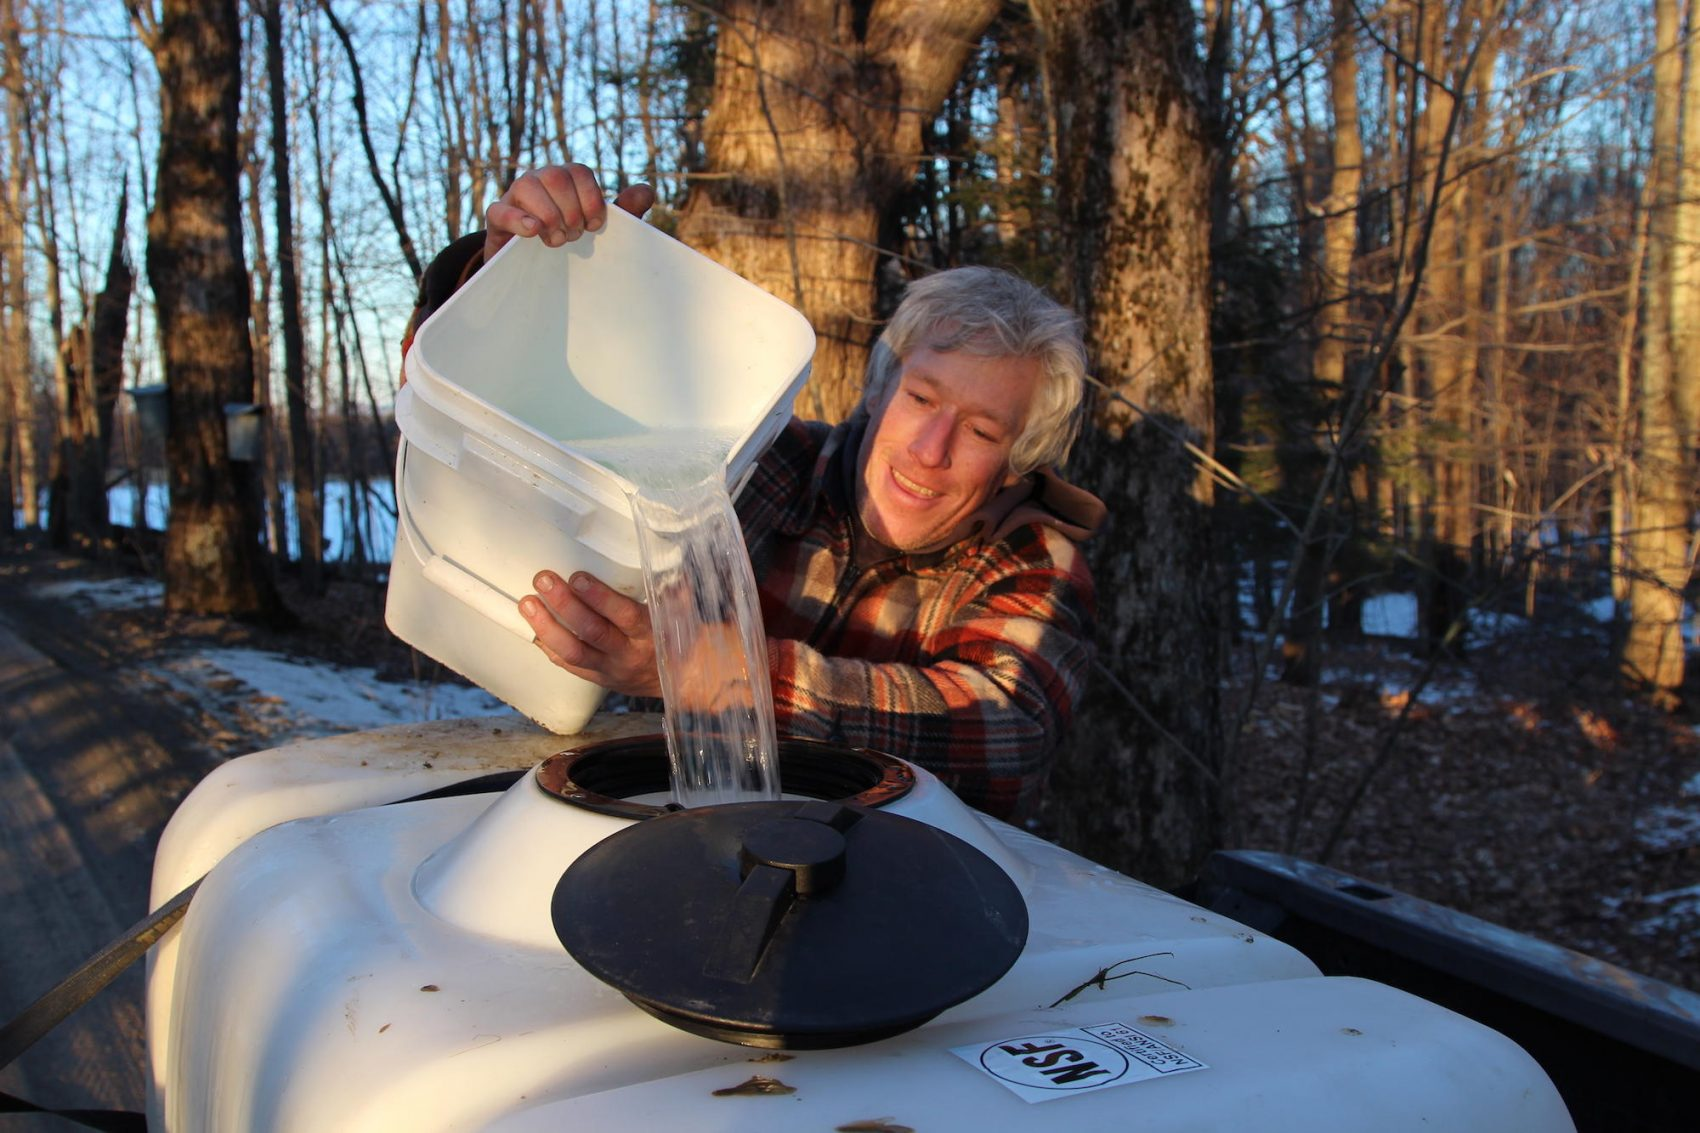 Bob Sabolefski is a small batch syrup producer in Stowe, Vt. He said he's not surprised by the arrival of out-of-state investors who hope to leverage rising syrup demand. (Lorne Matalon for VPR)